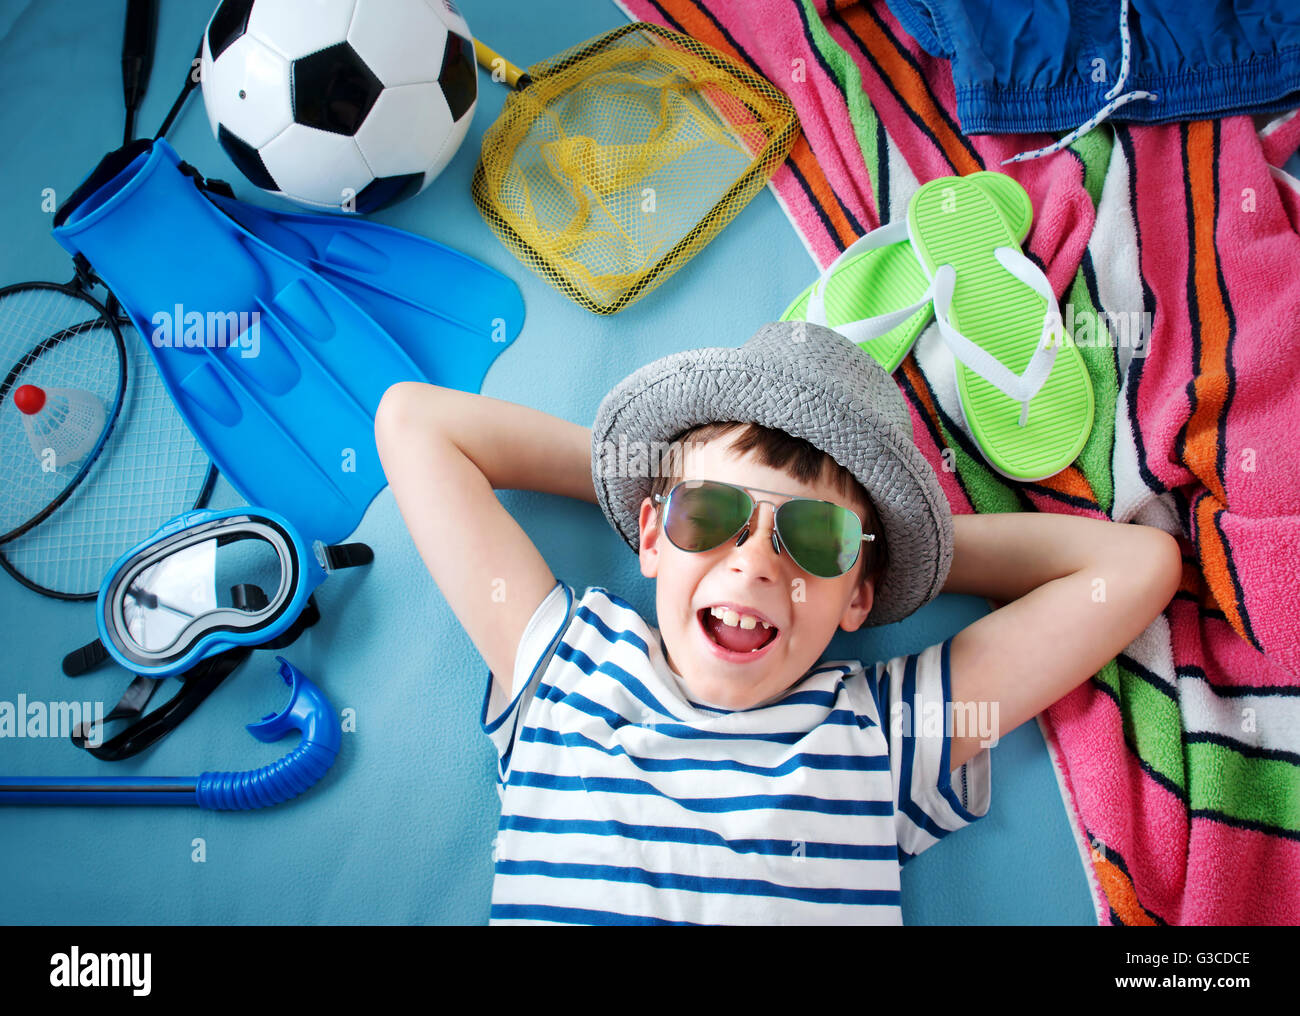 boy with sunglasses and toys on blue background Stock Photo